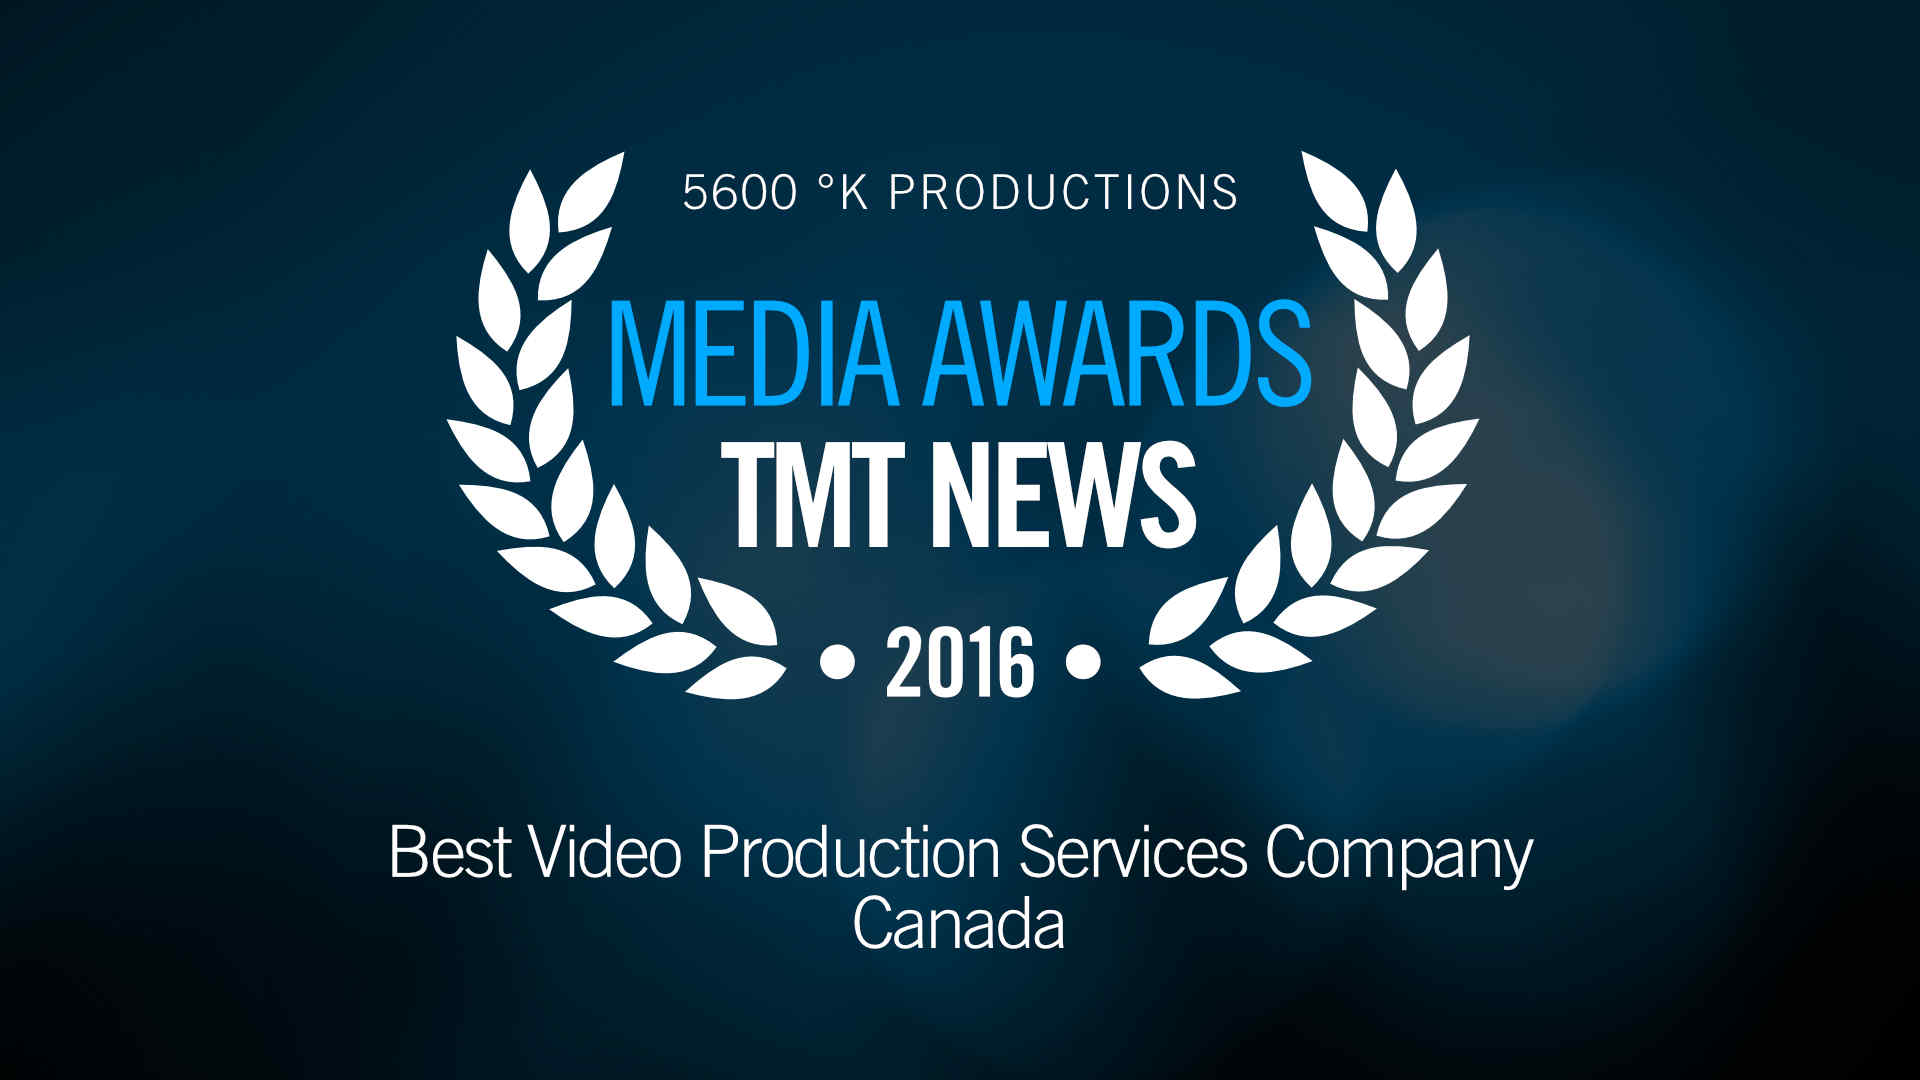 TMT News Media Awards 2016